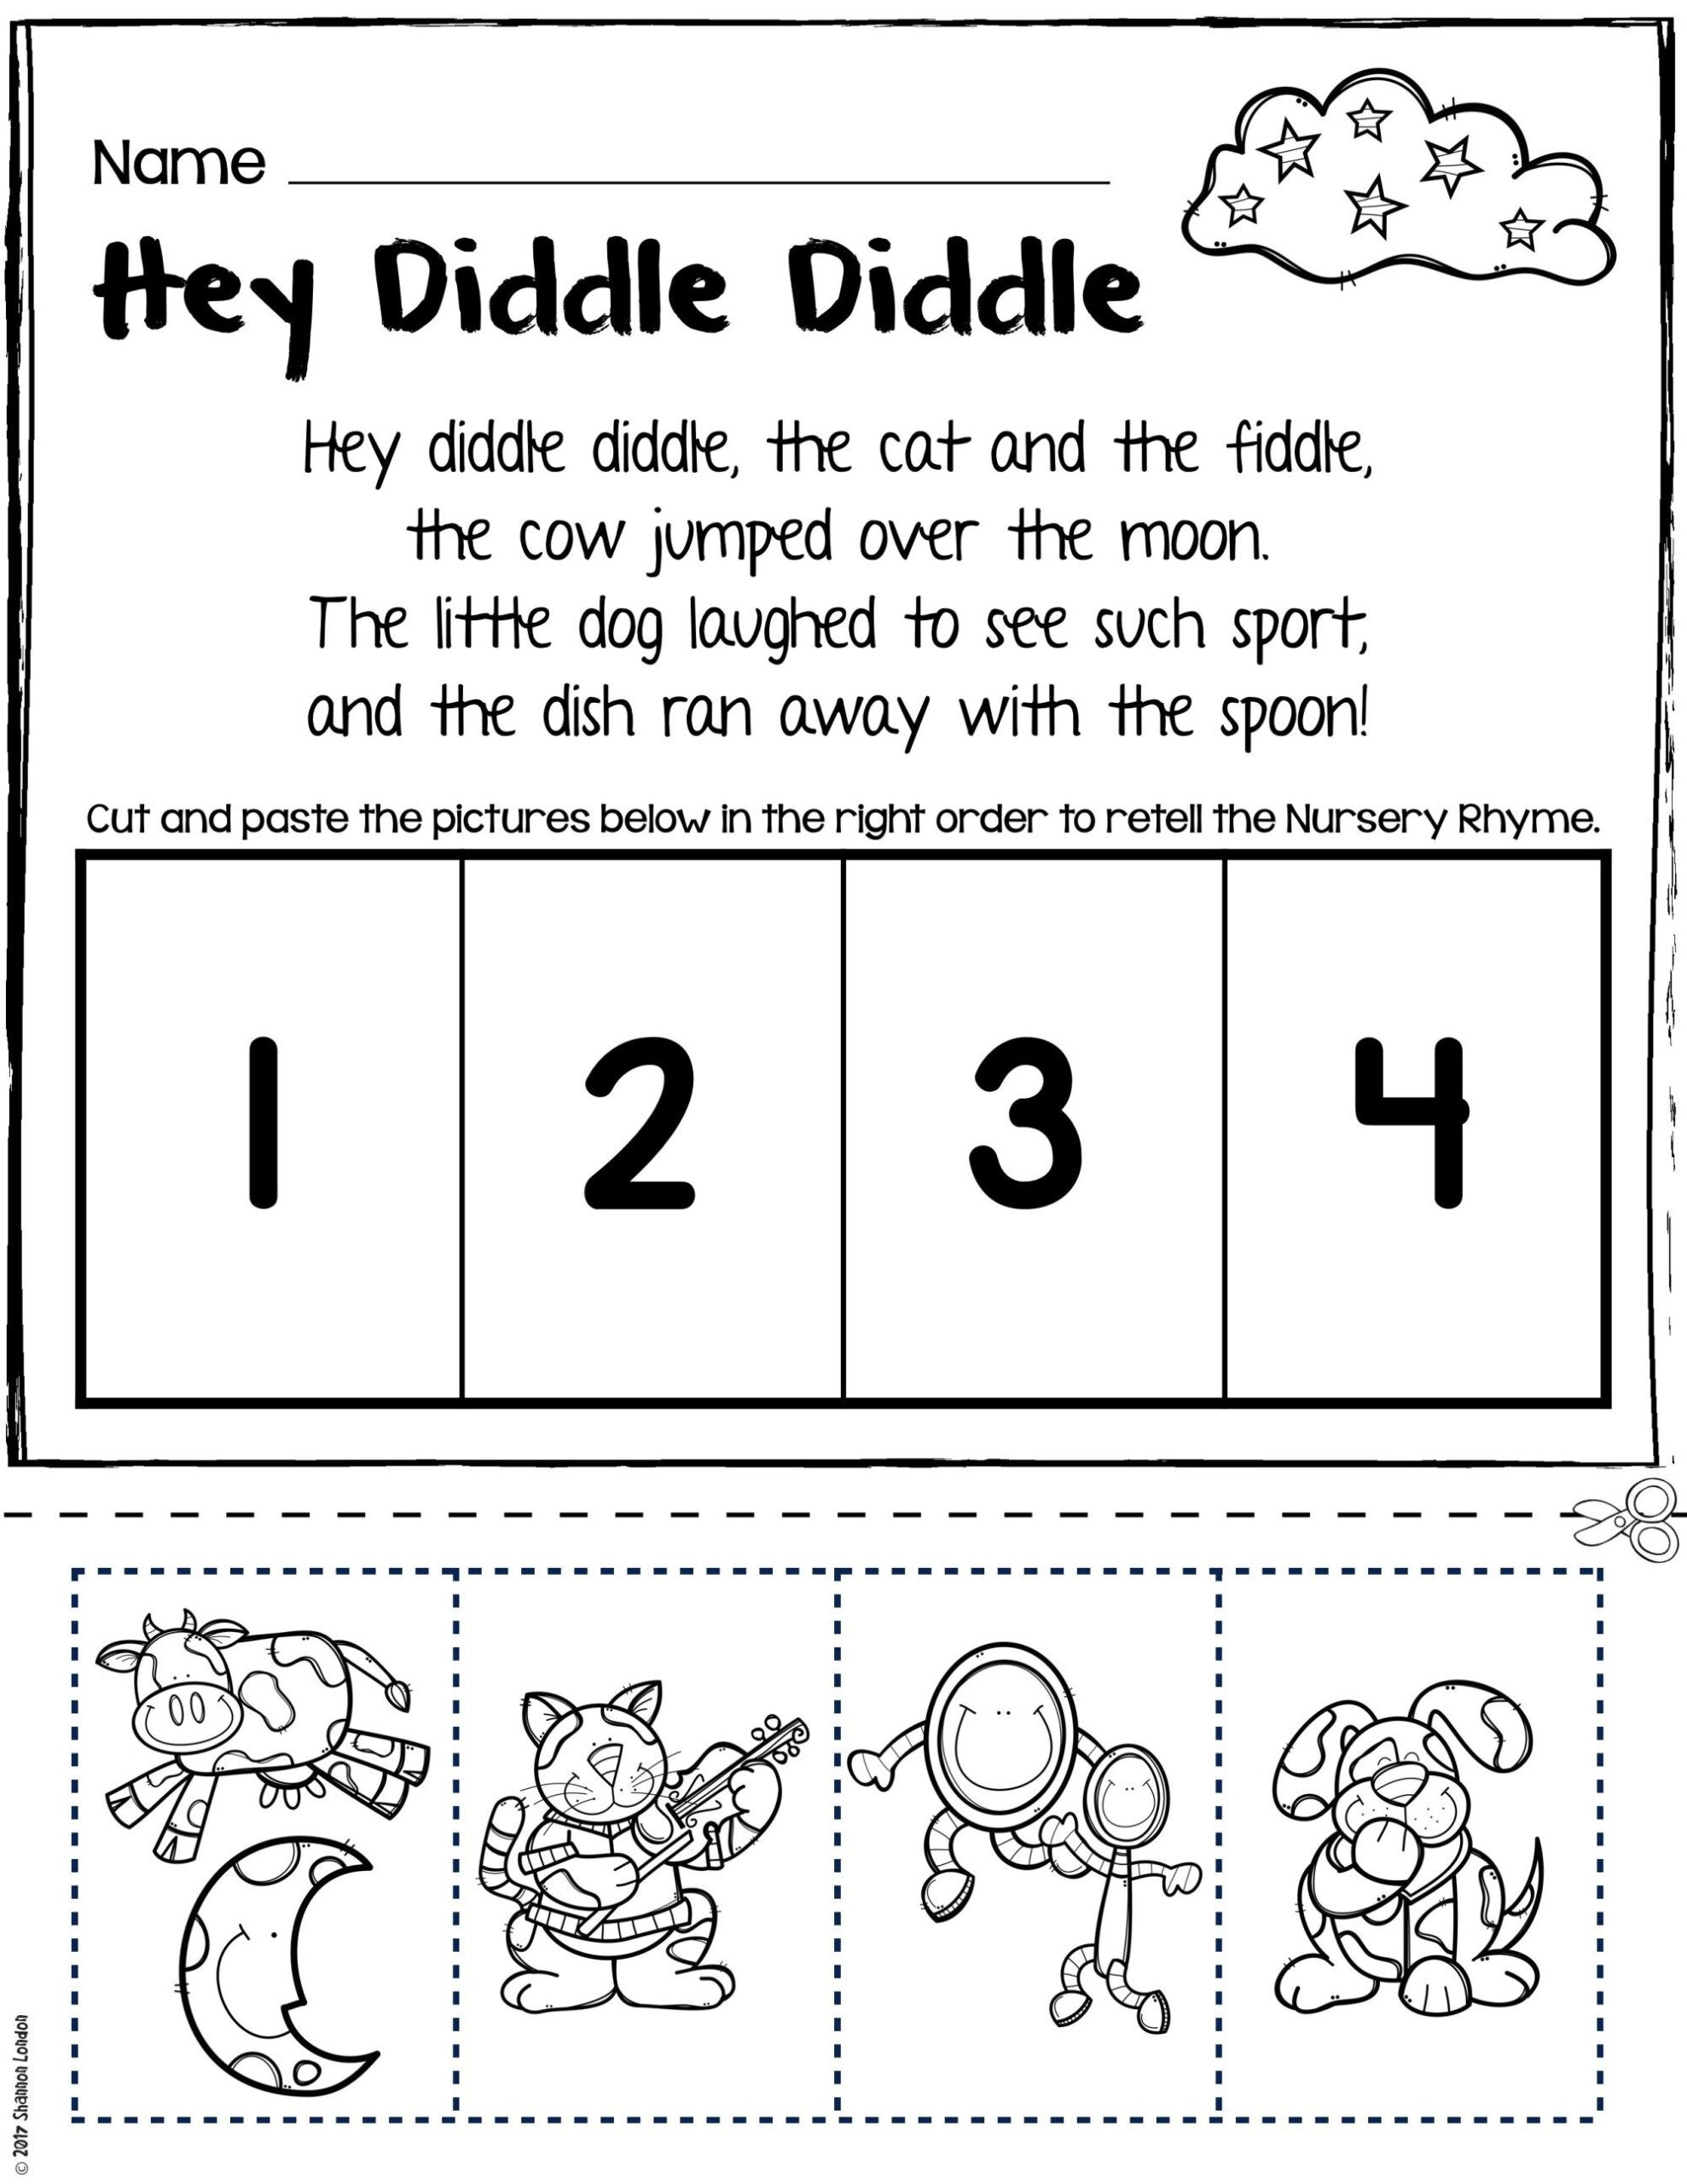 Rhyming Worksheets for Preschool Free Rhyming Worksheets for Preschool Worksheet Teeth Kindy